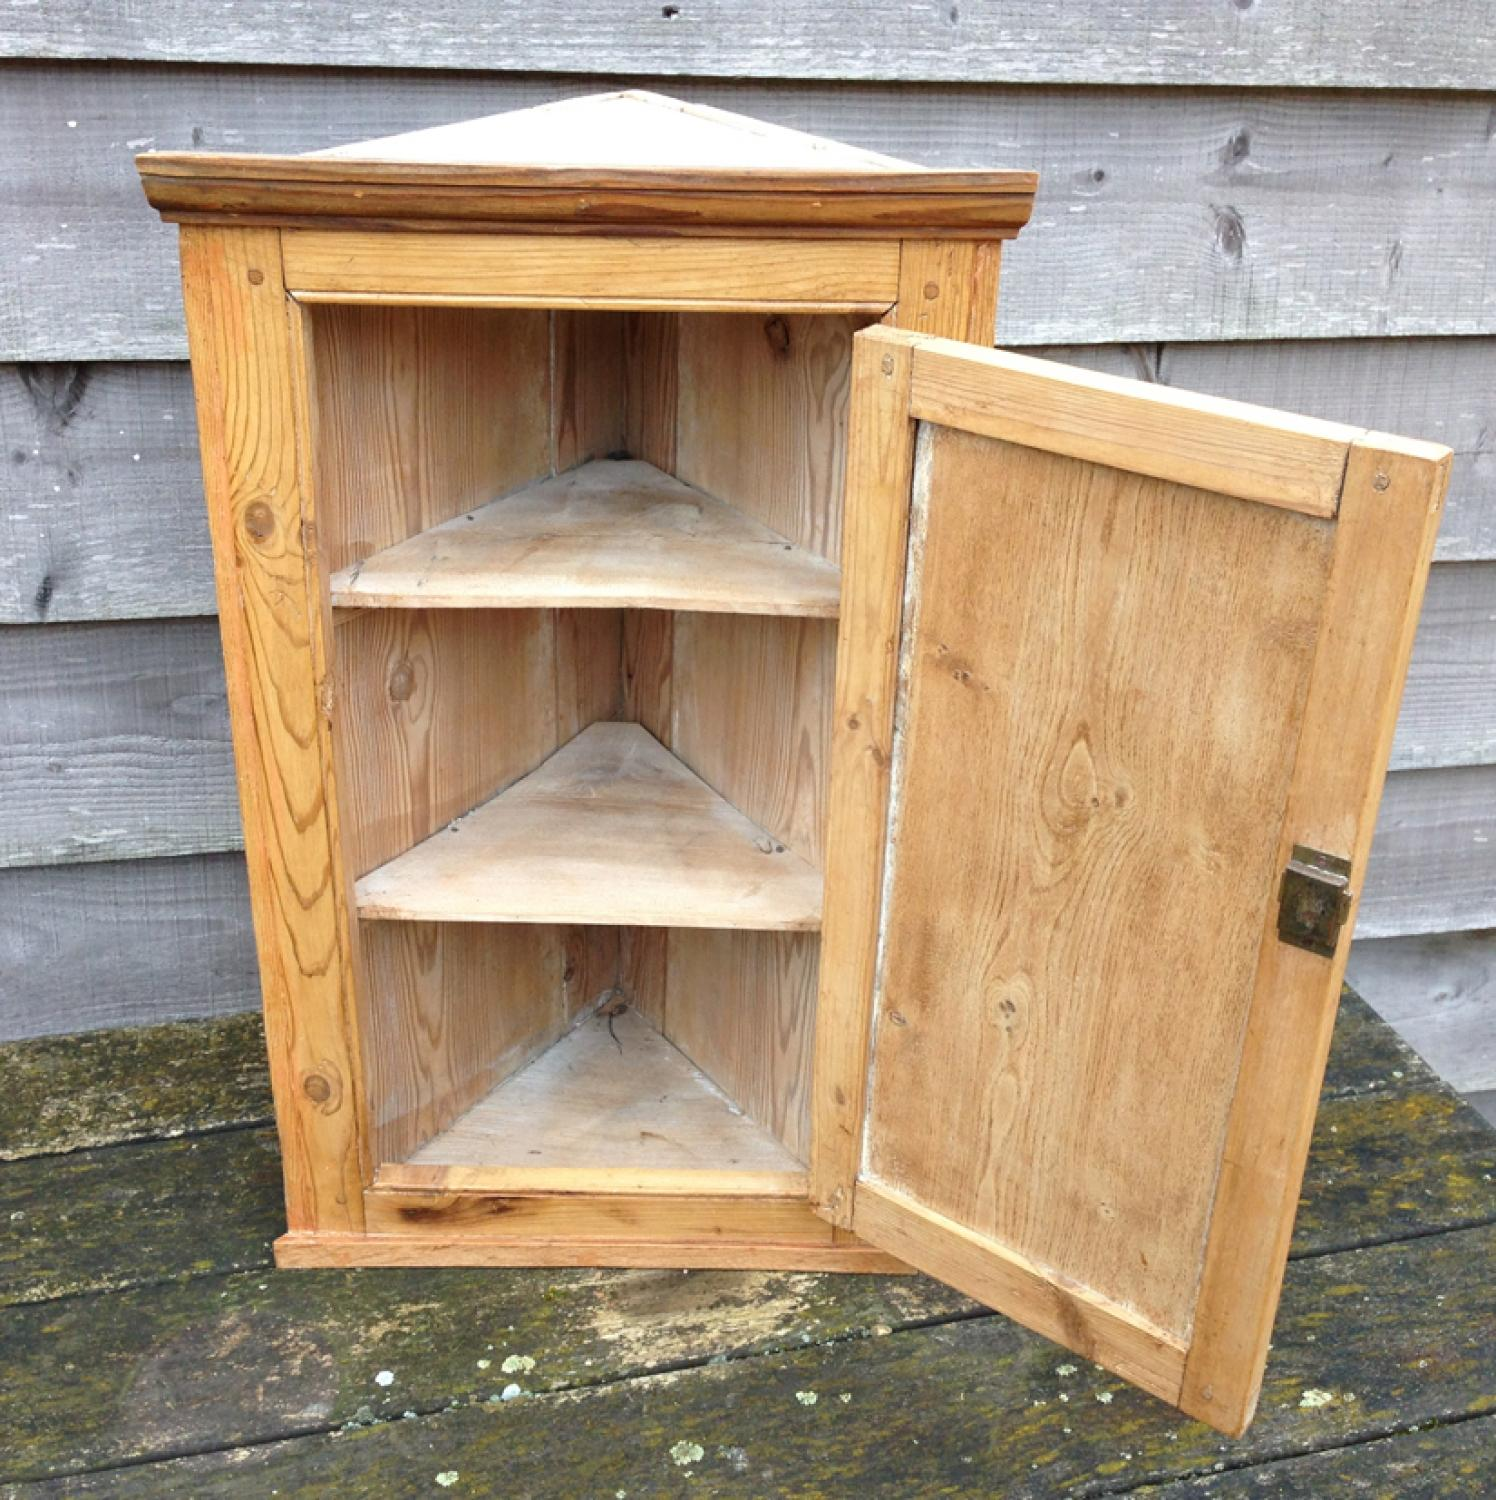 Antique Pine Corner Cupboard - picture 2 ... - Antique Pine Corner Cupboard In FURNITURE & BOXES